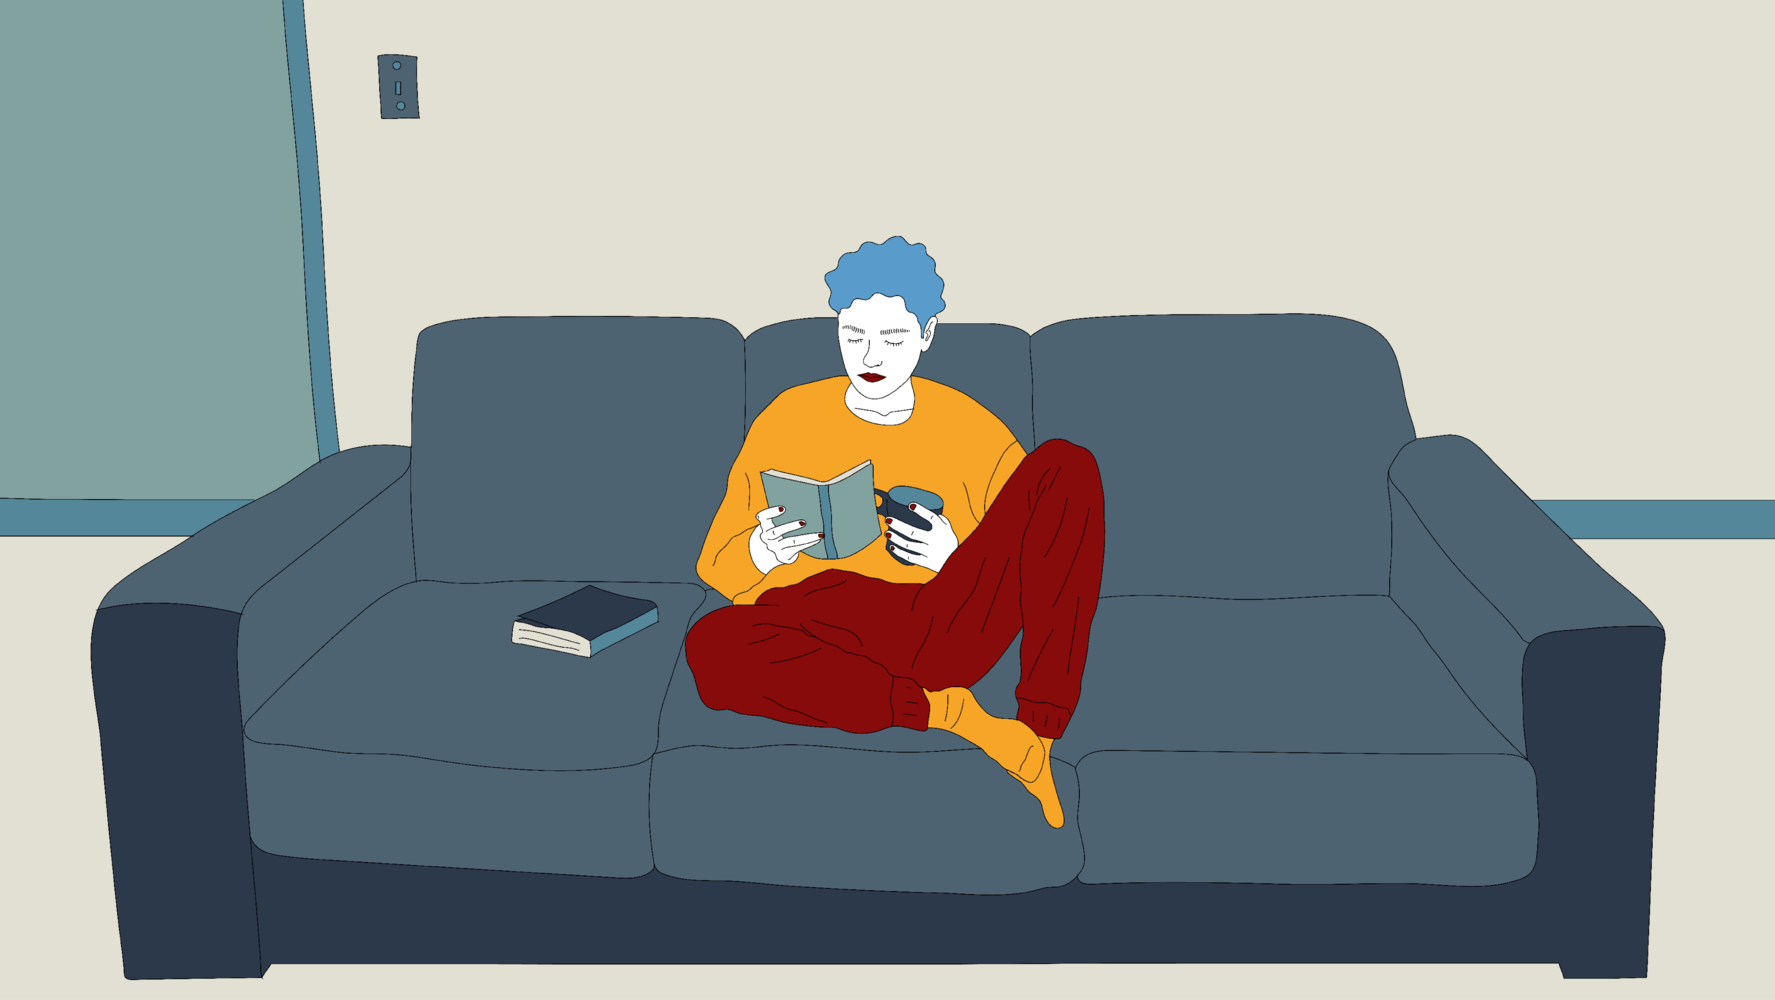 Person sitting on the couch drinking coffee and reading a book